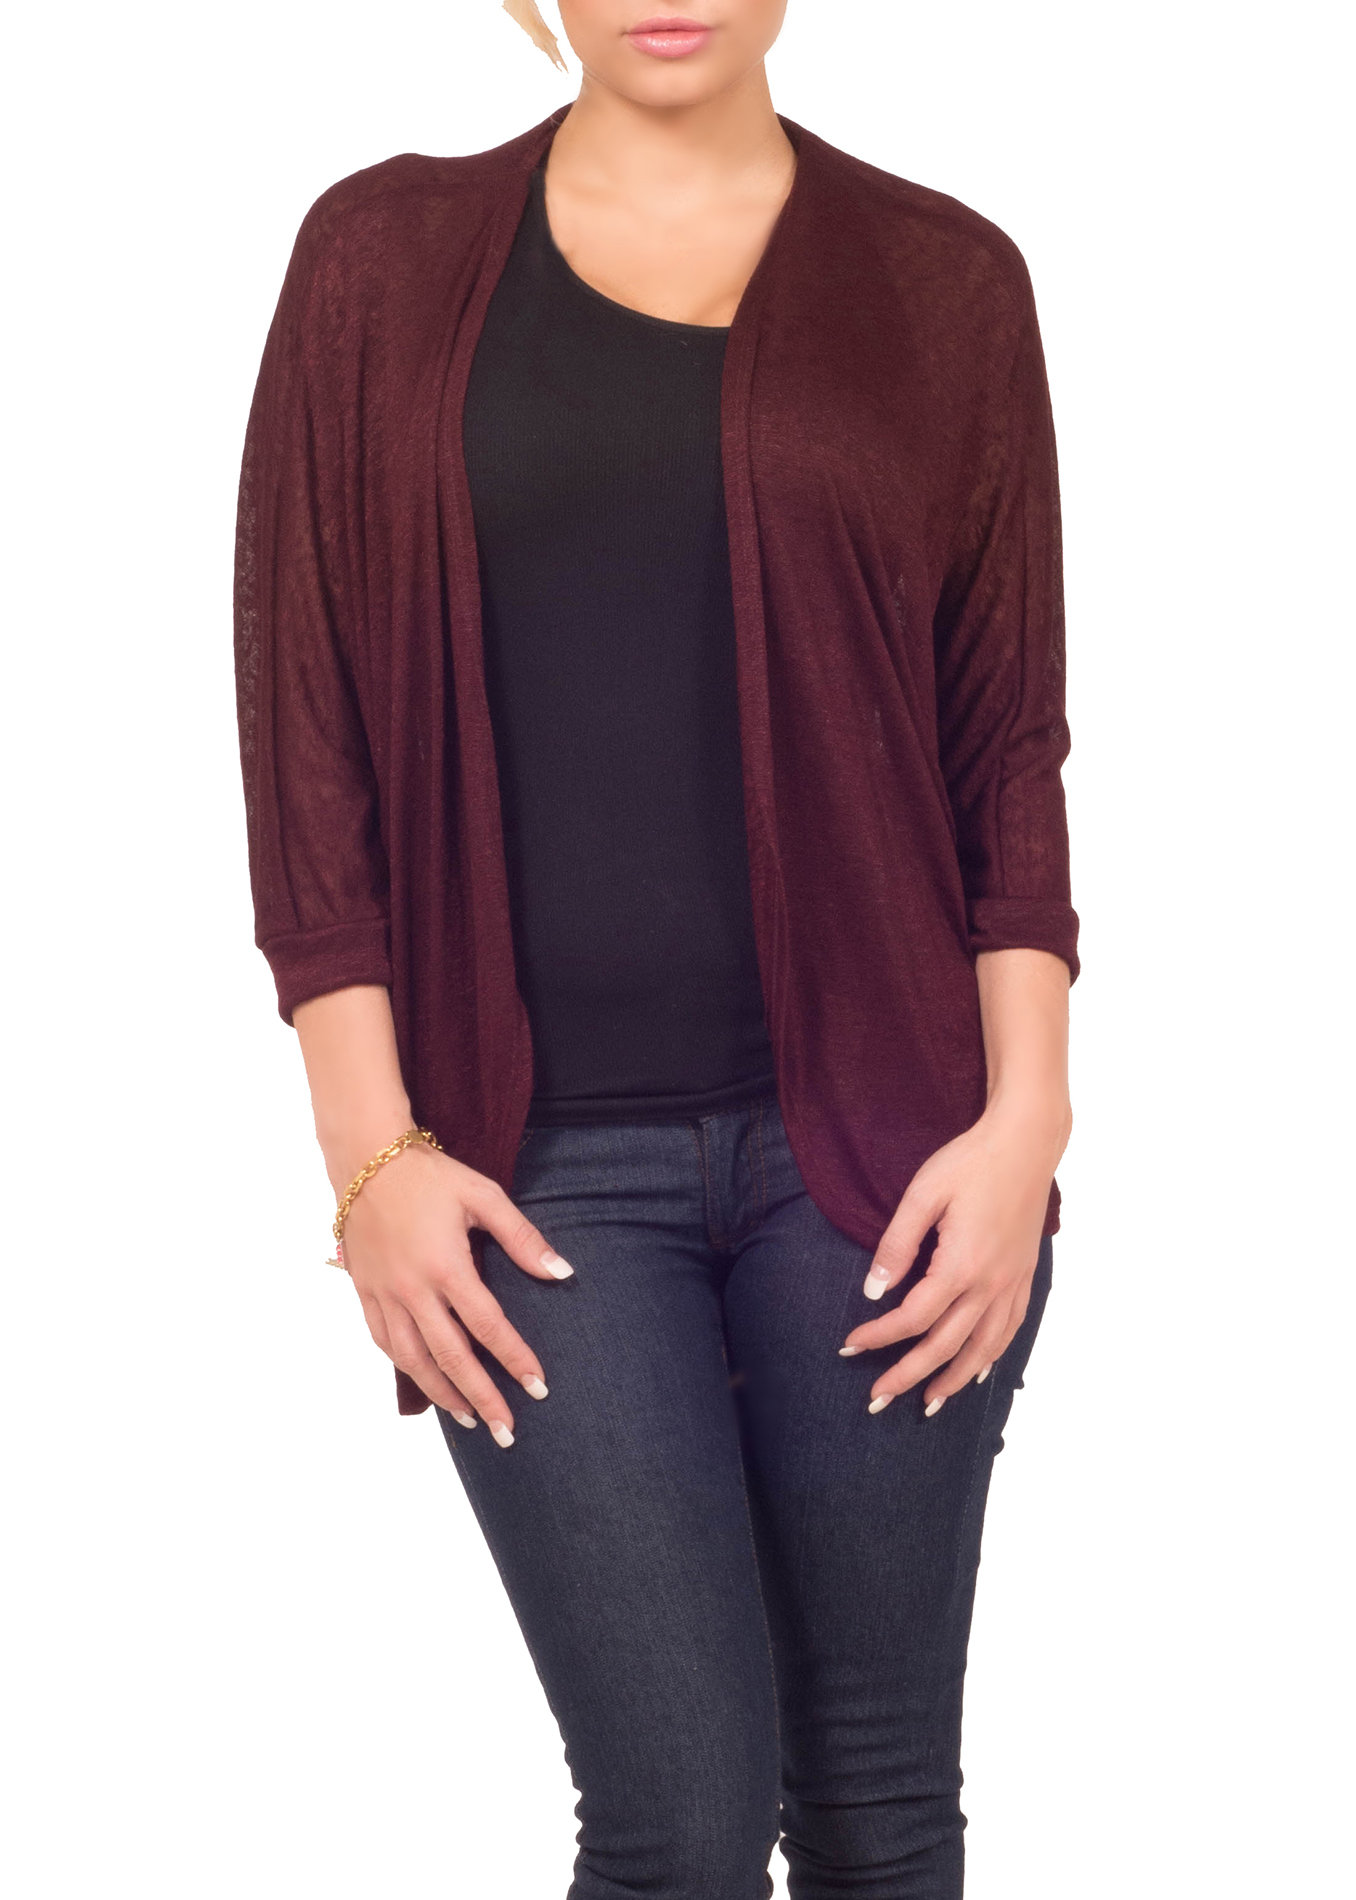 Hot From Hollywood Womens Fitted Sweater Knit Solid Sheer Open Front 3/4 Sleeve Casual Cardigan at Sears.com